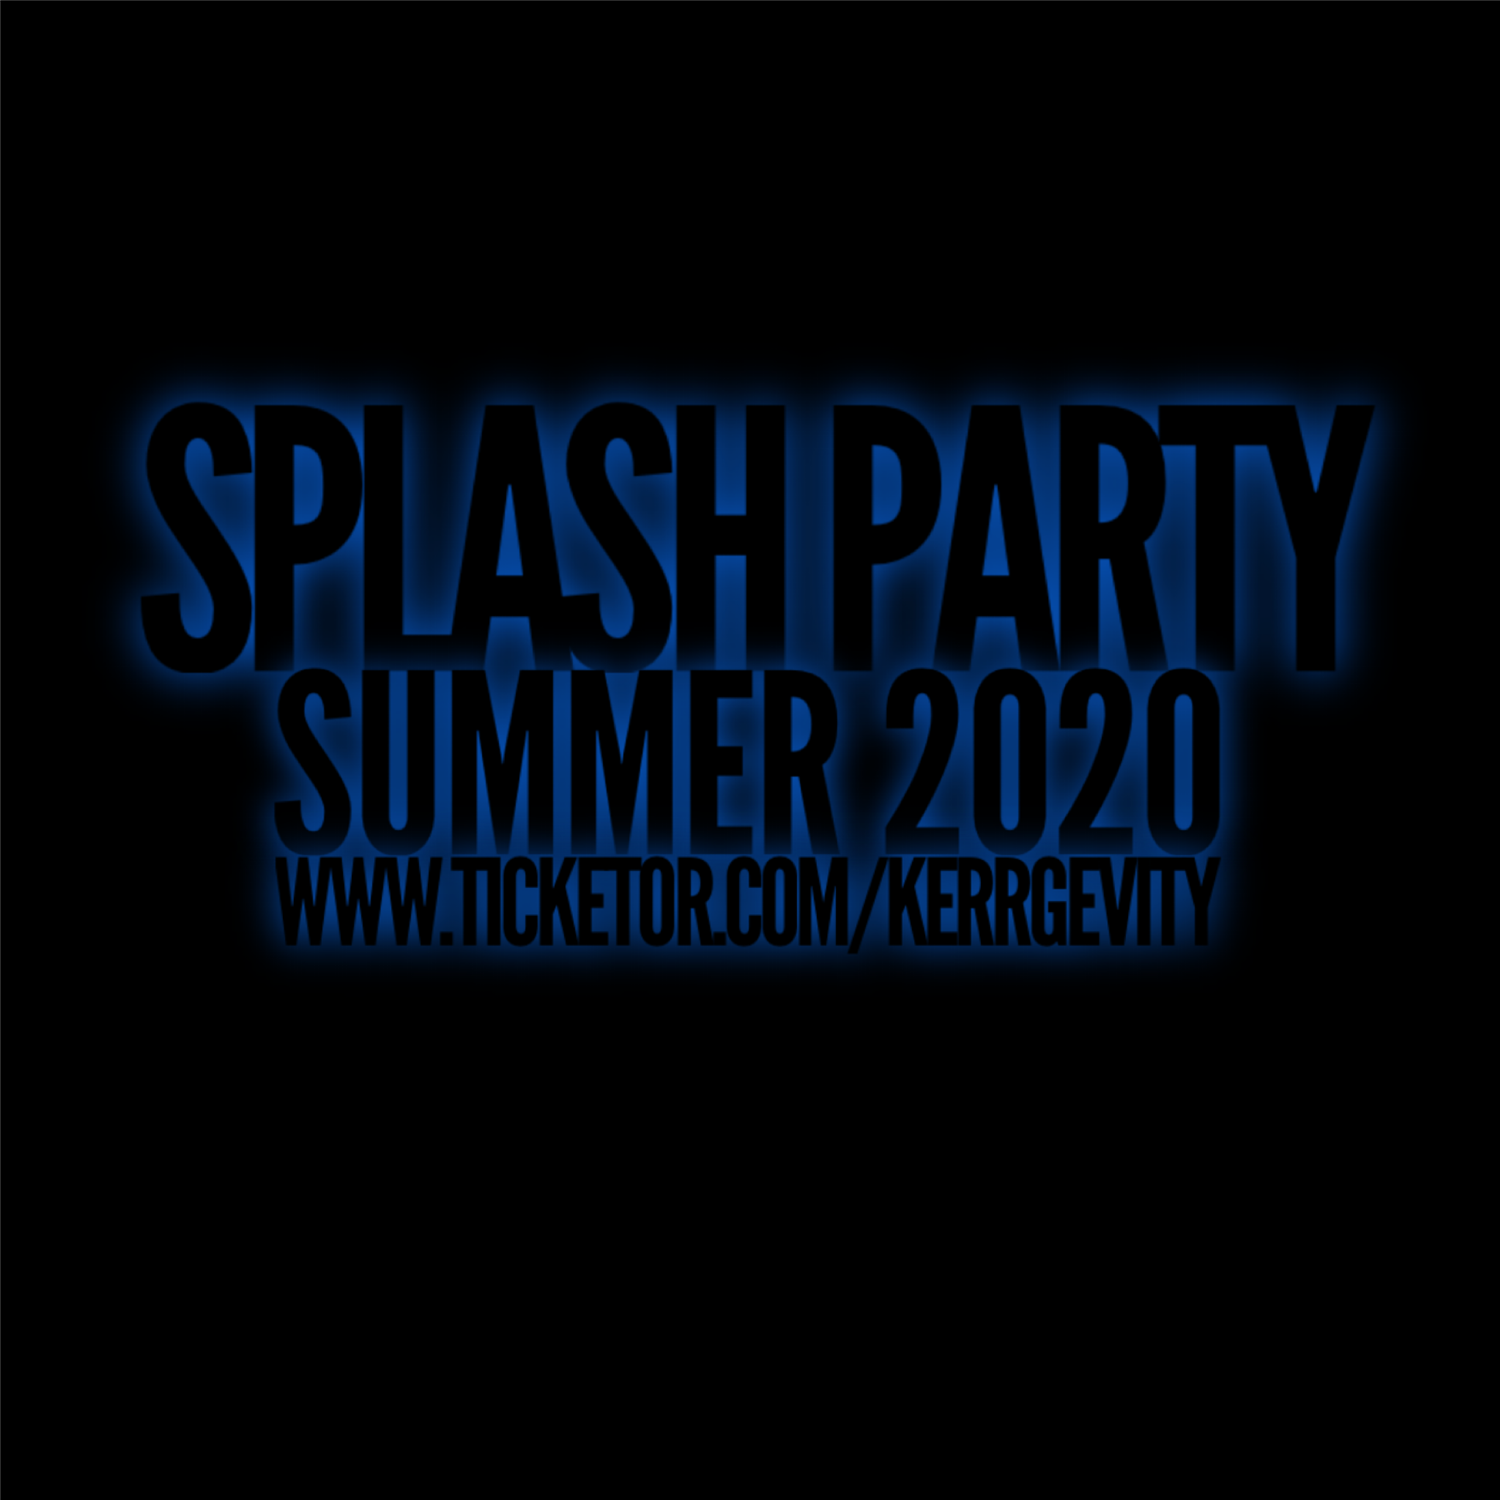 Splash Party  on Jul 11, 18:00@Bolingbrook - Buy tickets and Get information on Kerrgevity Sp & Ent Group